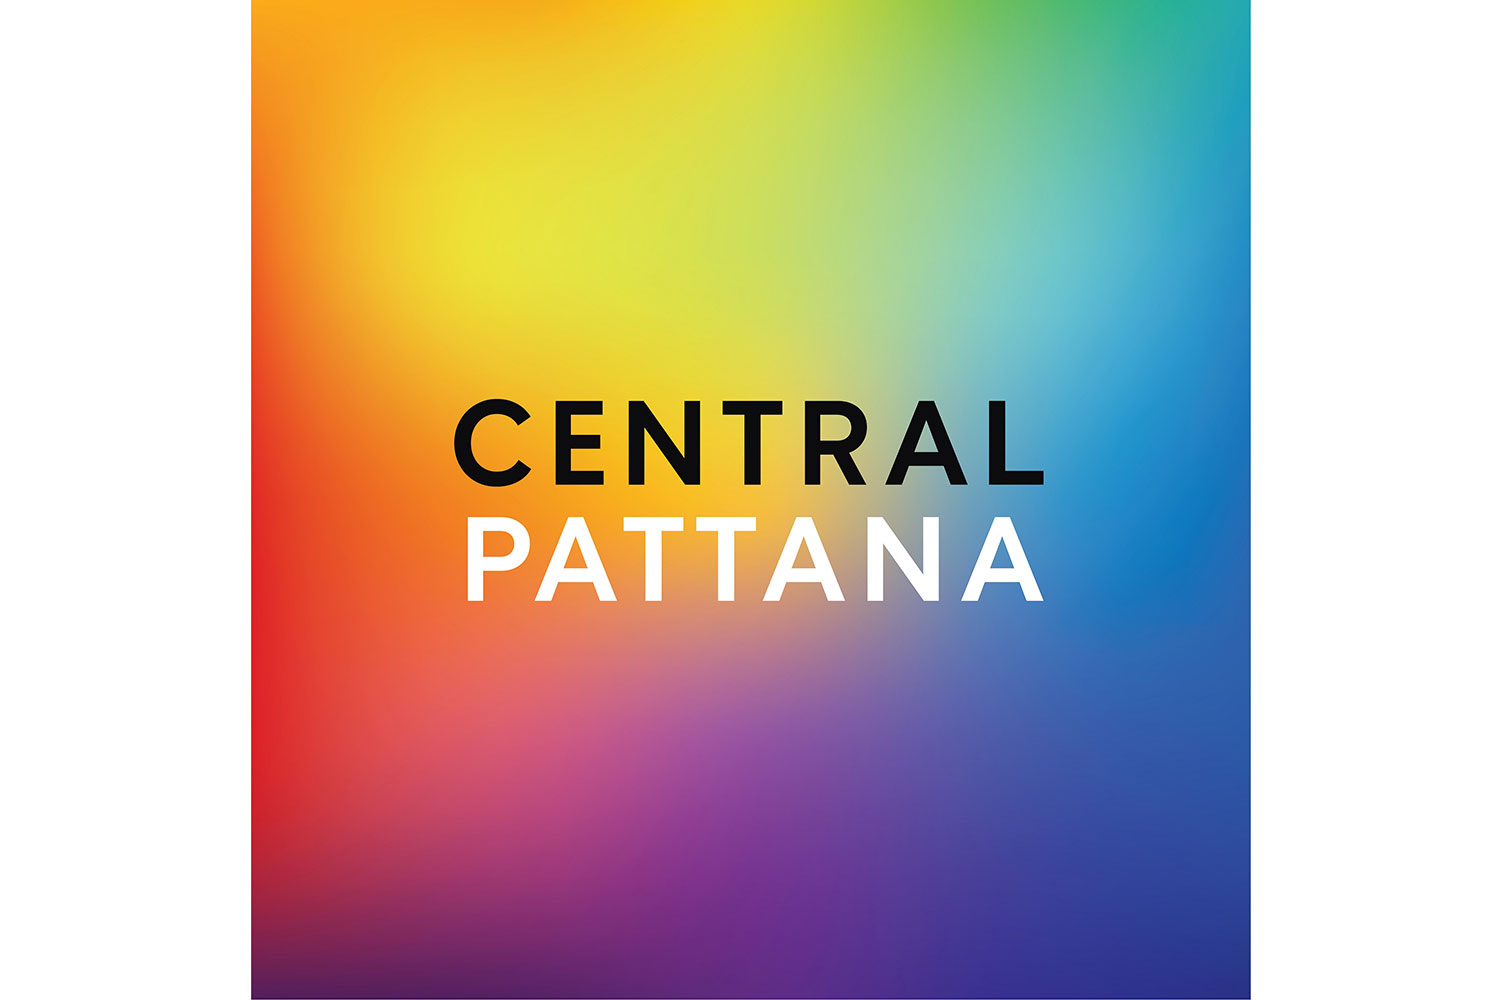 Central Pattana celebrates gender diversity, reaffirms its provision of equal opportunities